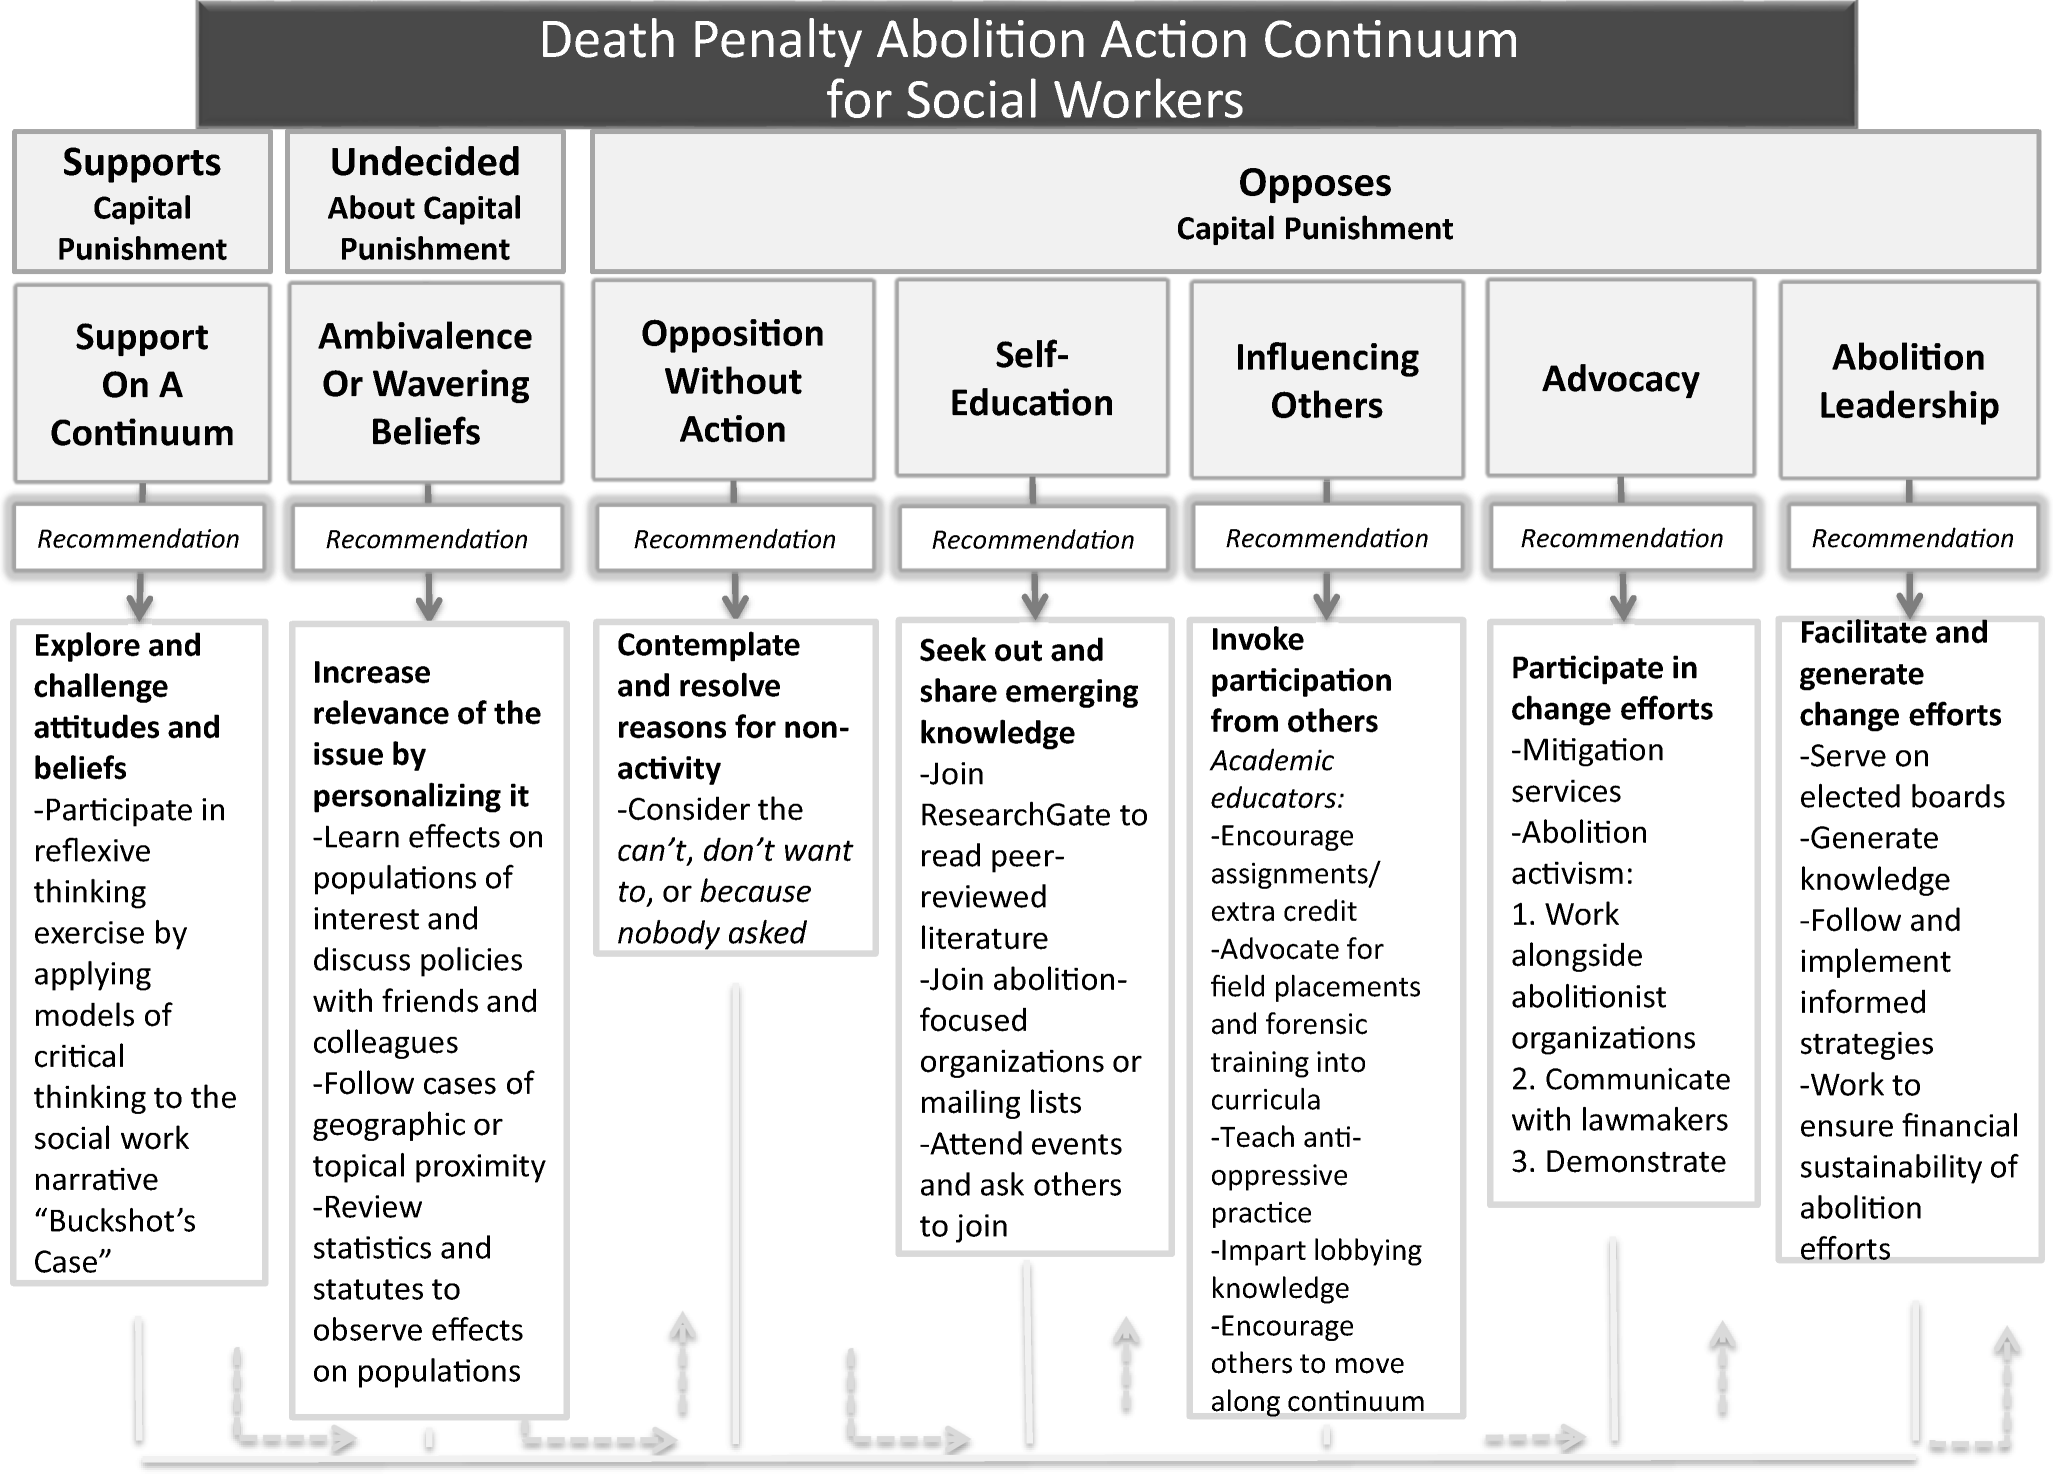 Social Work and Capital Punishment: a Call to Action